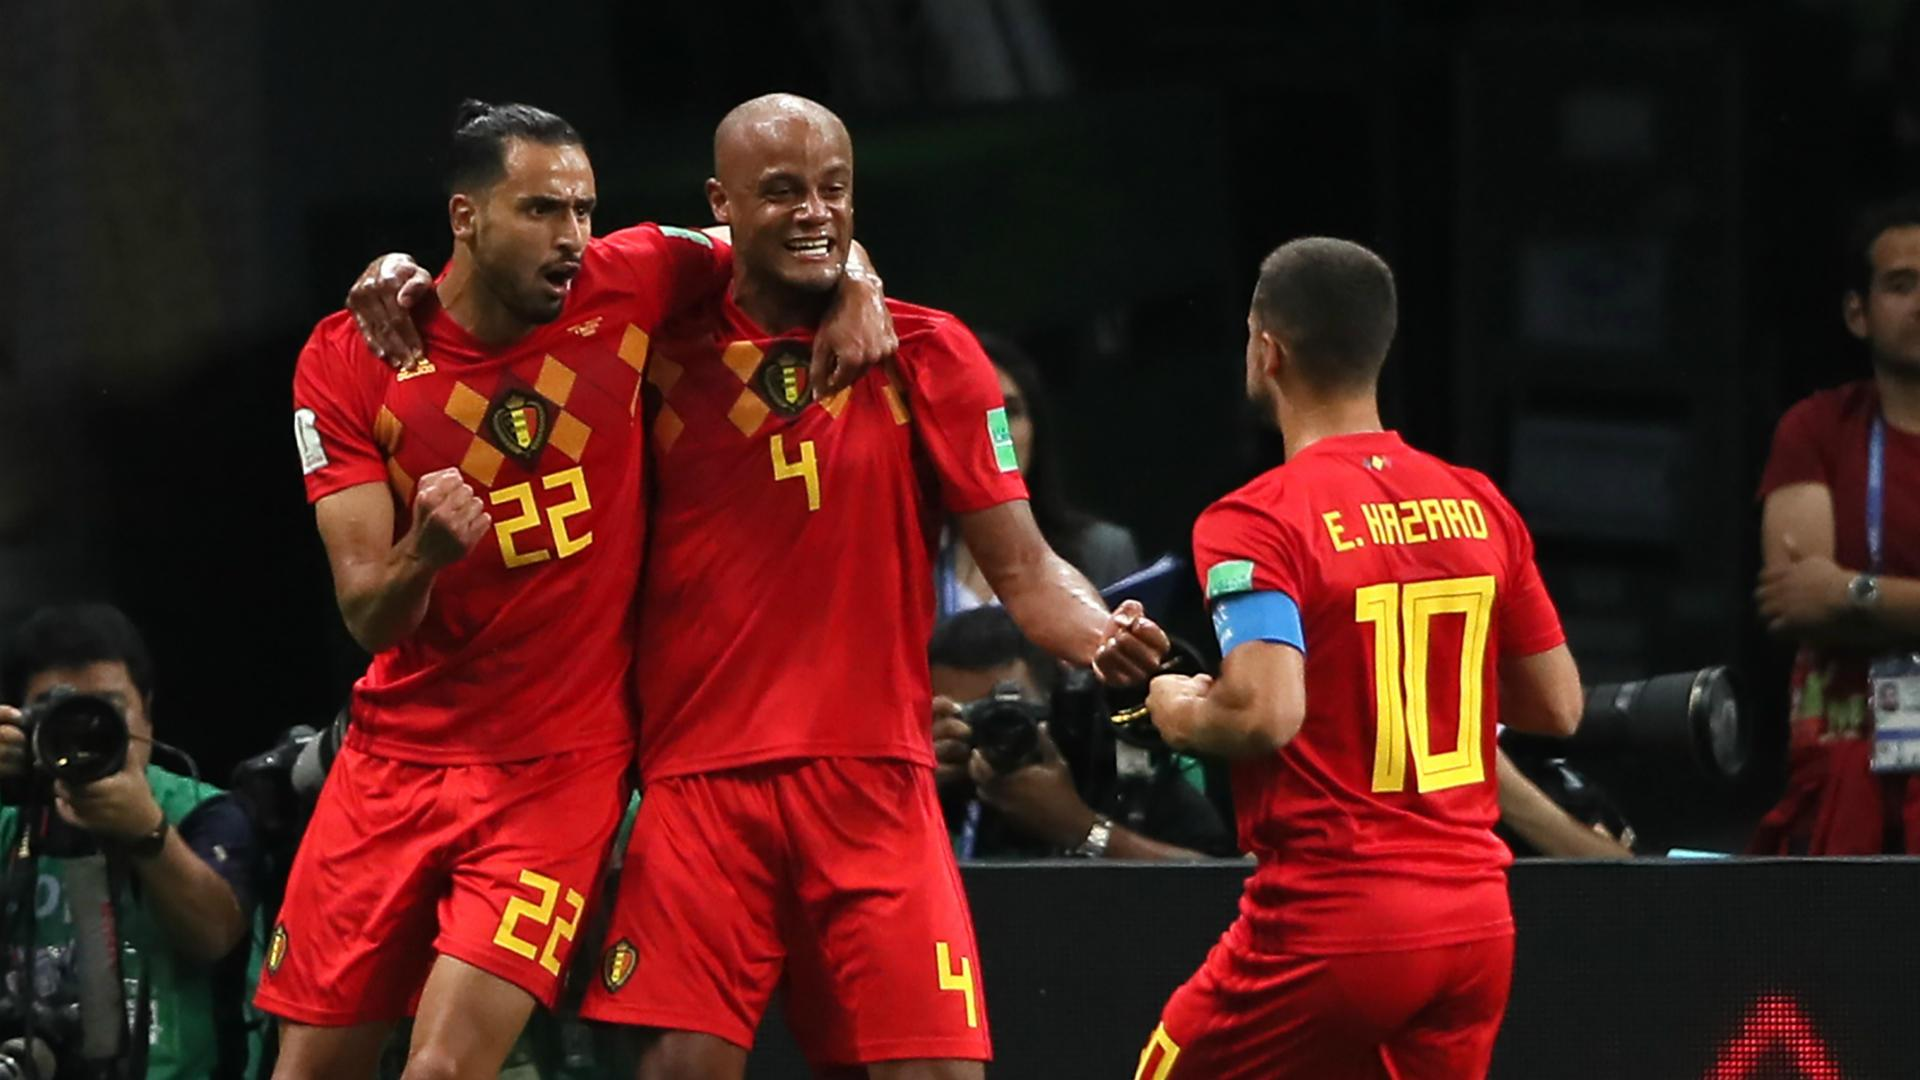 World Cup semi-final: France vs. Belgium team news, predictions, betting odds, TV